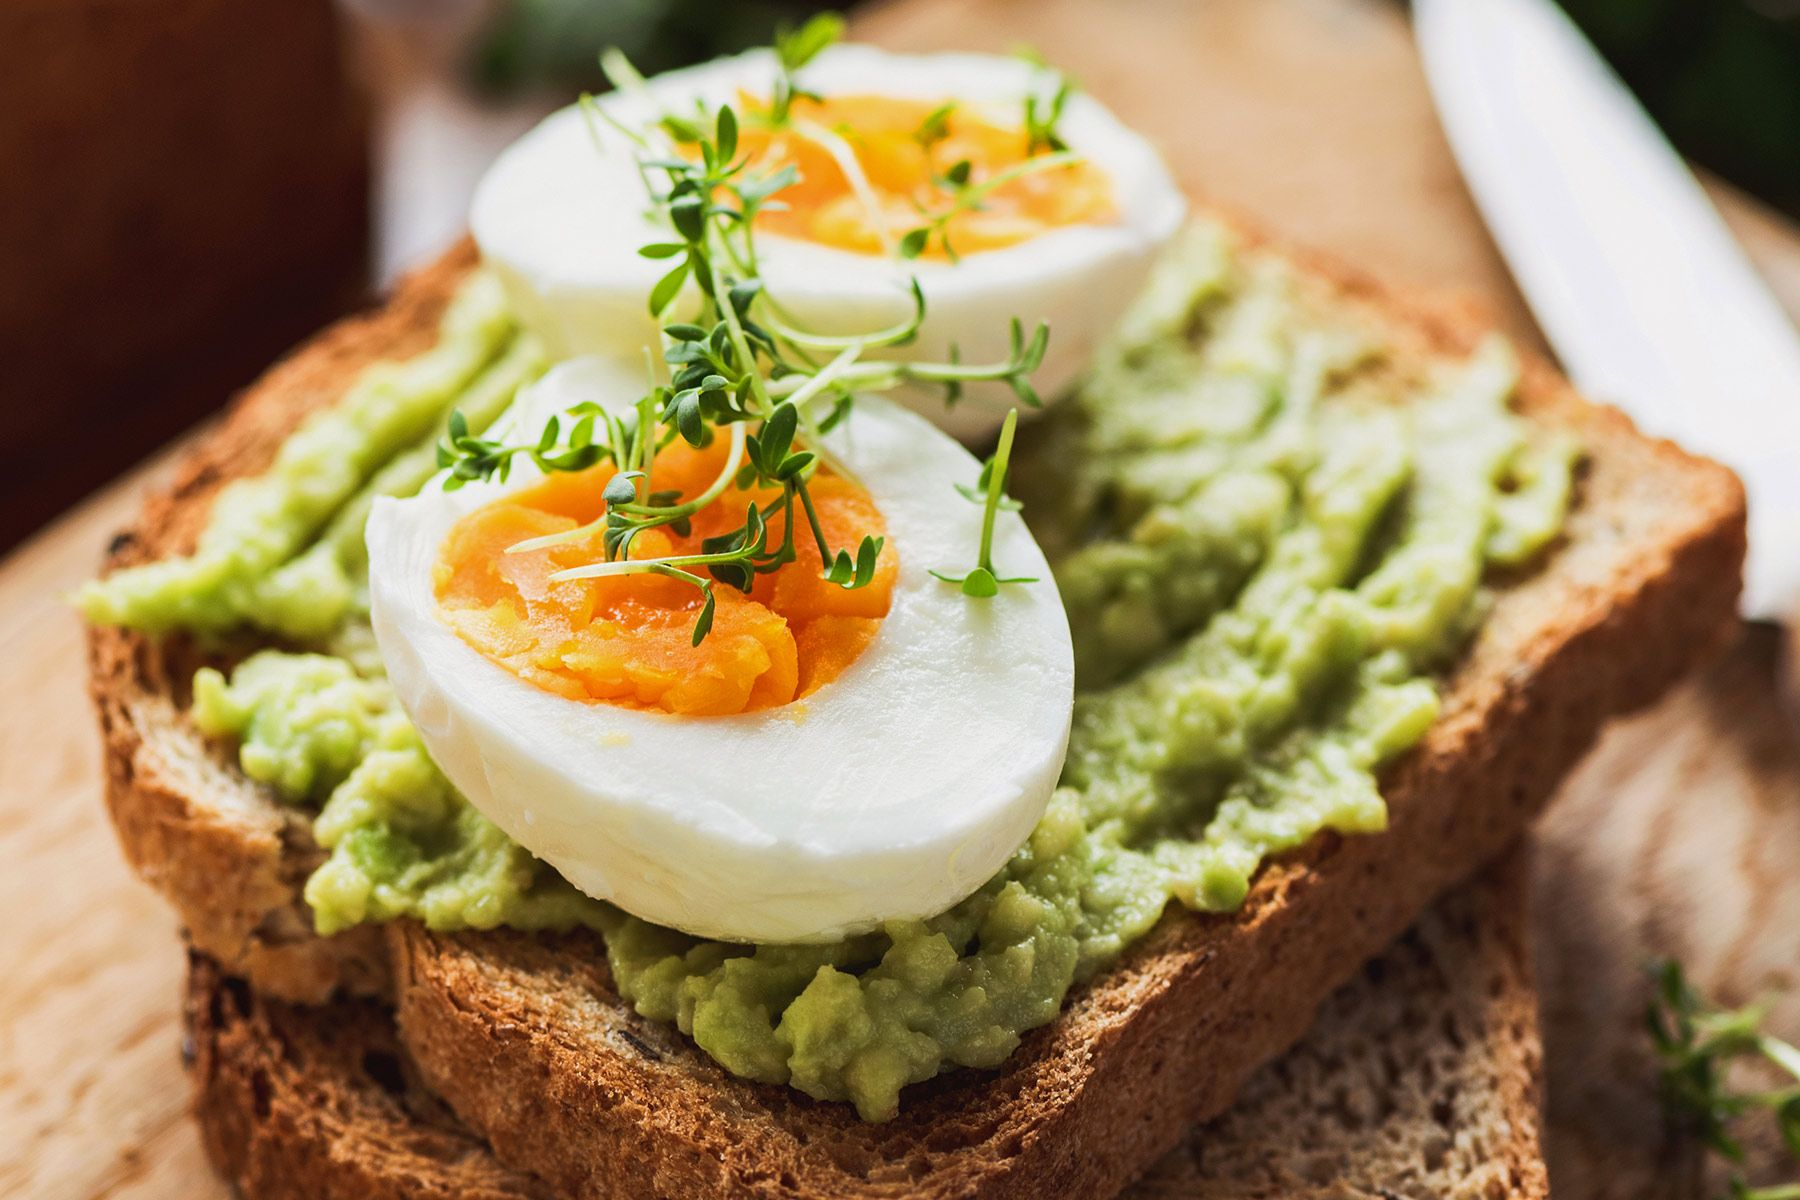 Tasty Diabetes Friendly Breakfast Ideas